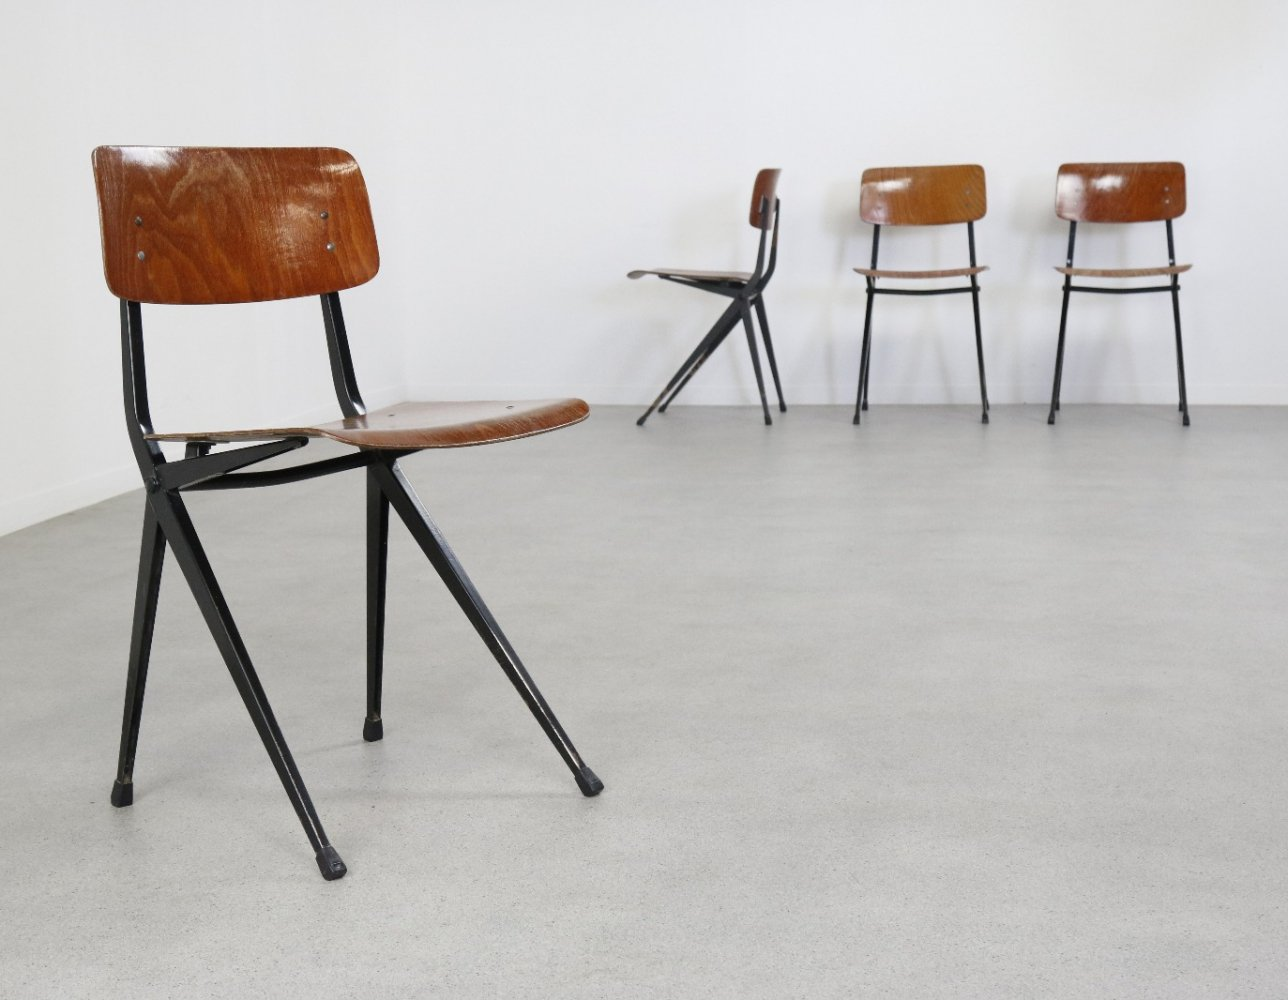 Set of 4 dining chairs by Ynske Kooistra for Marko Holland, 1960s